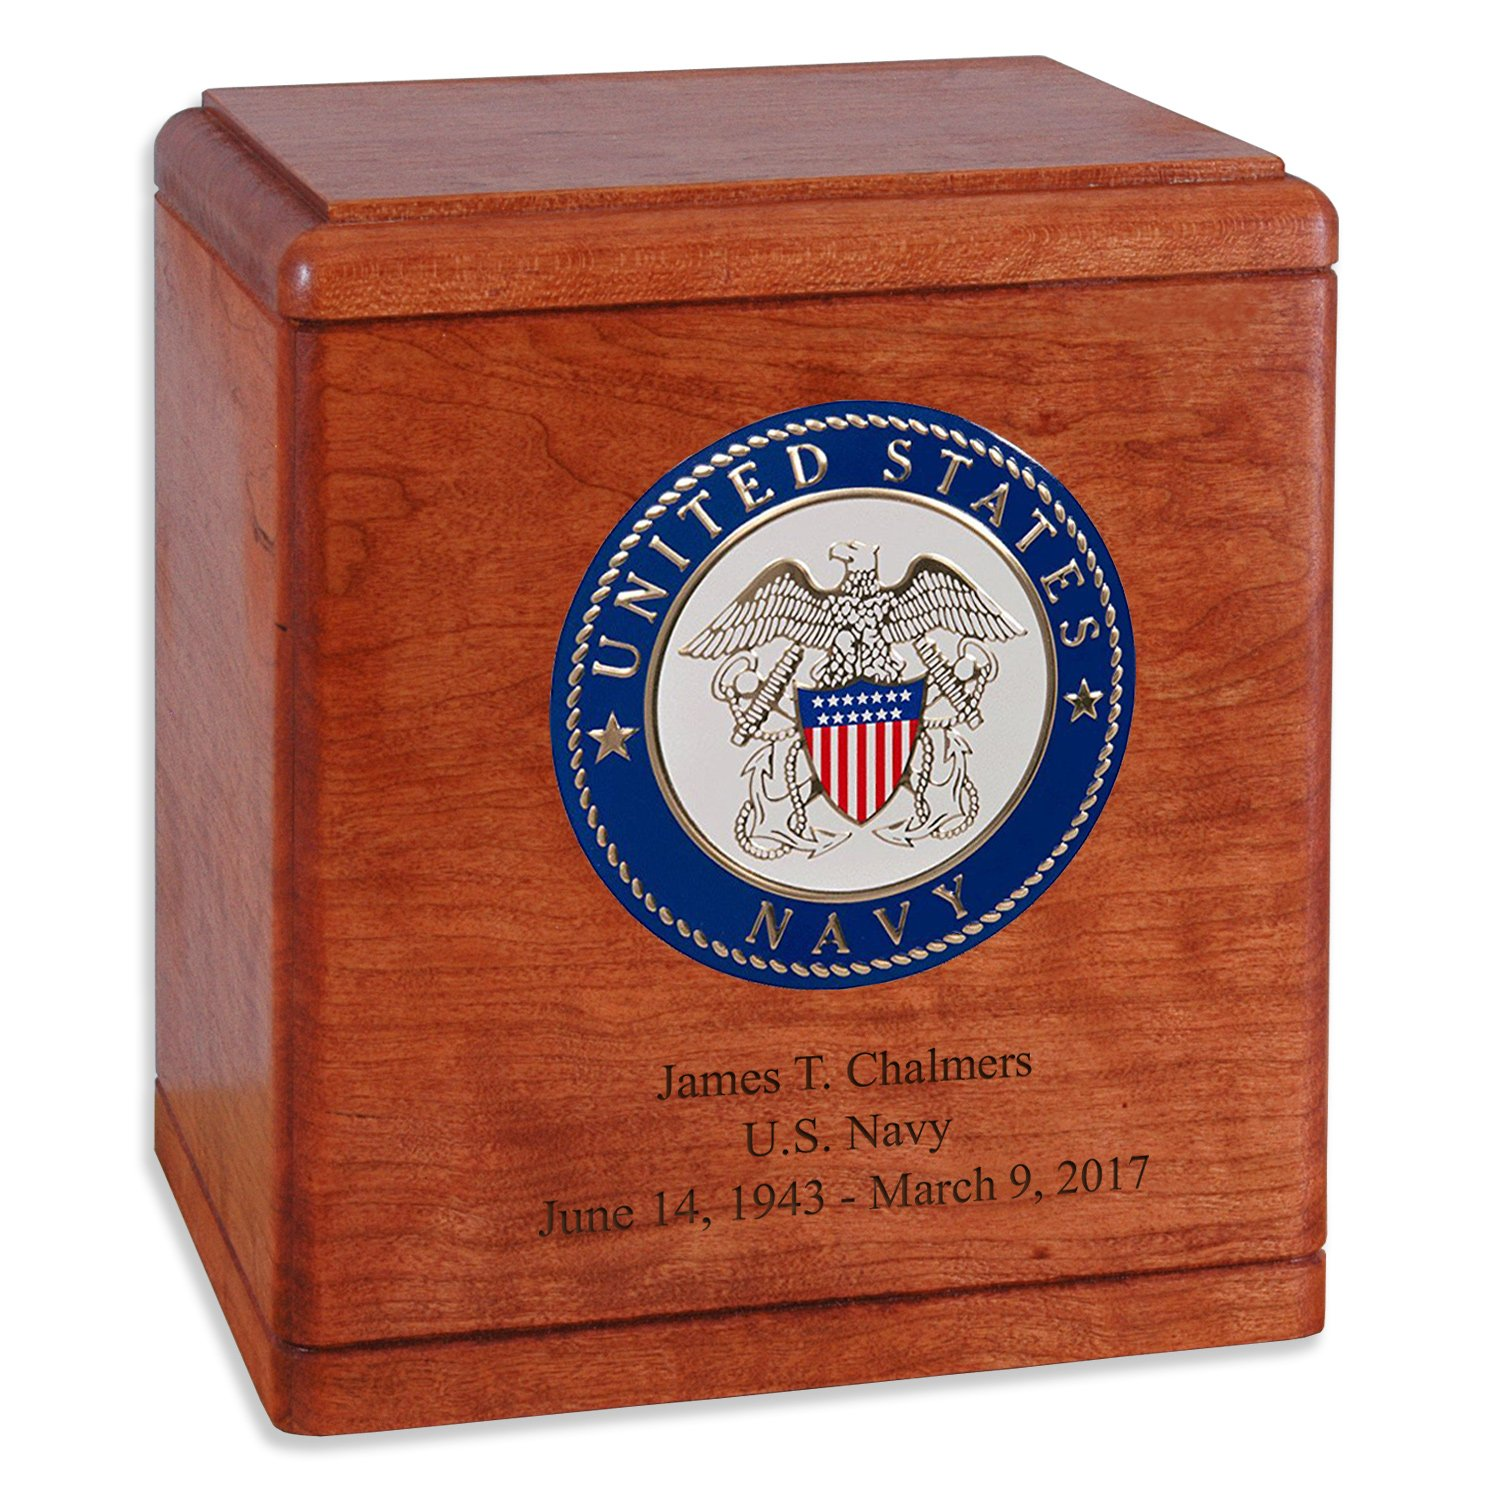 Cherry Wood Military Cremation Urn for the Navy Veteran with Custom Inscription - Personalized Wooden Funeral Urns Made in the USA (more options available)